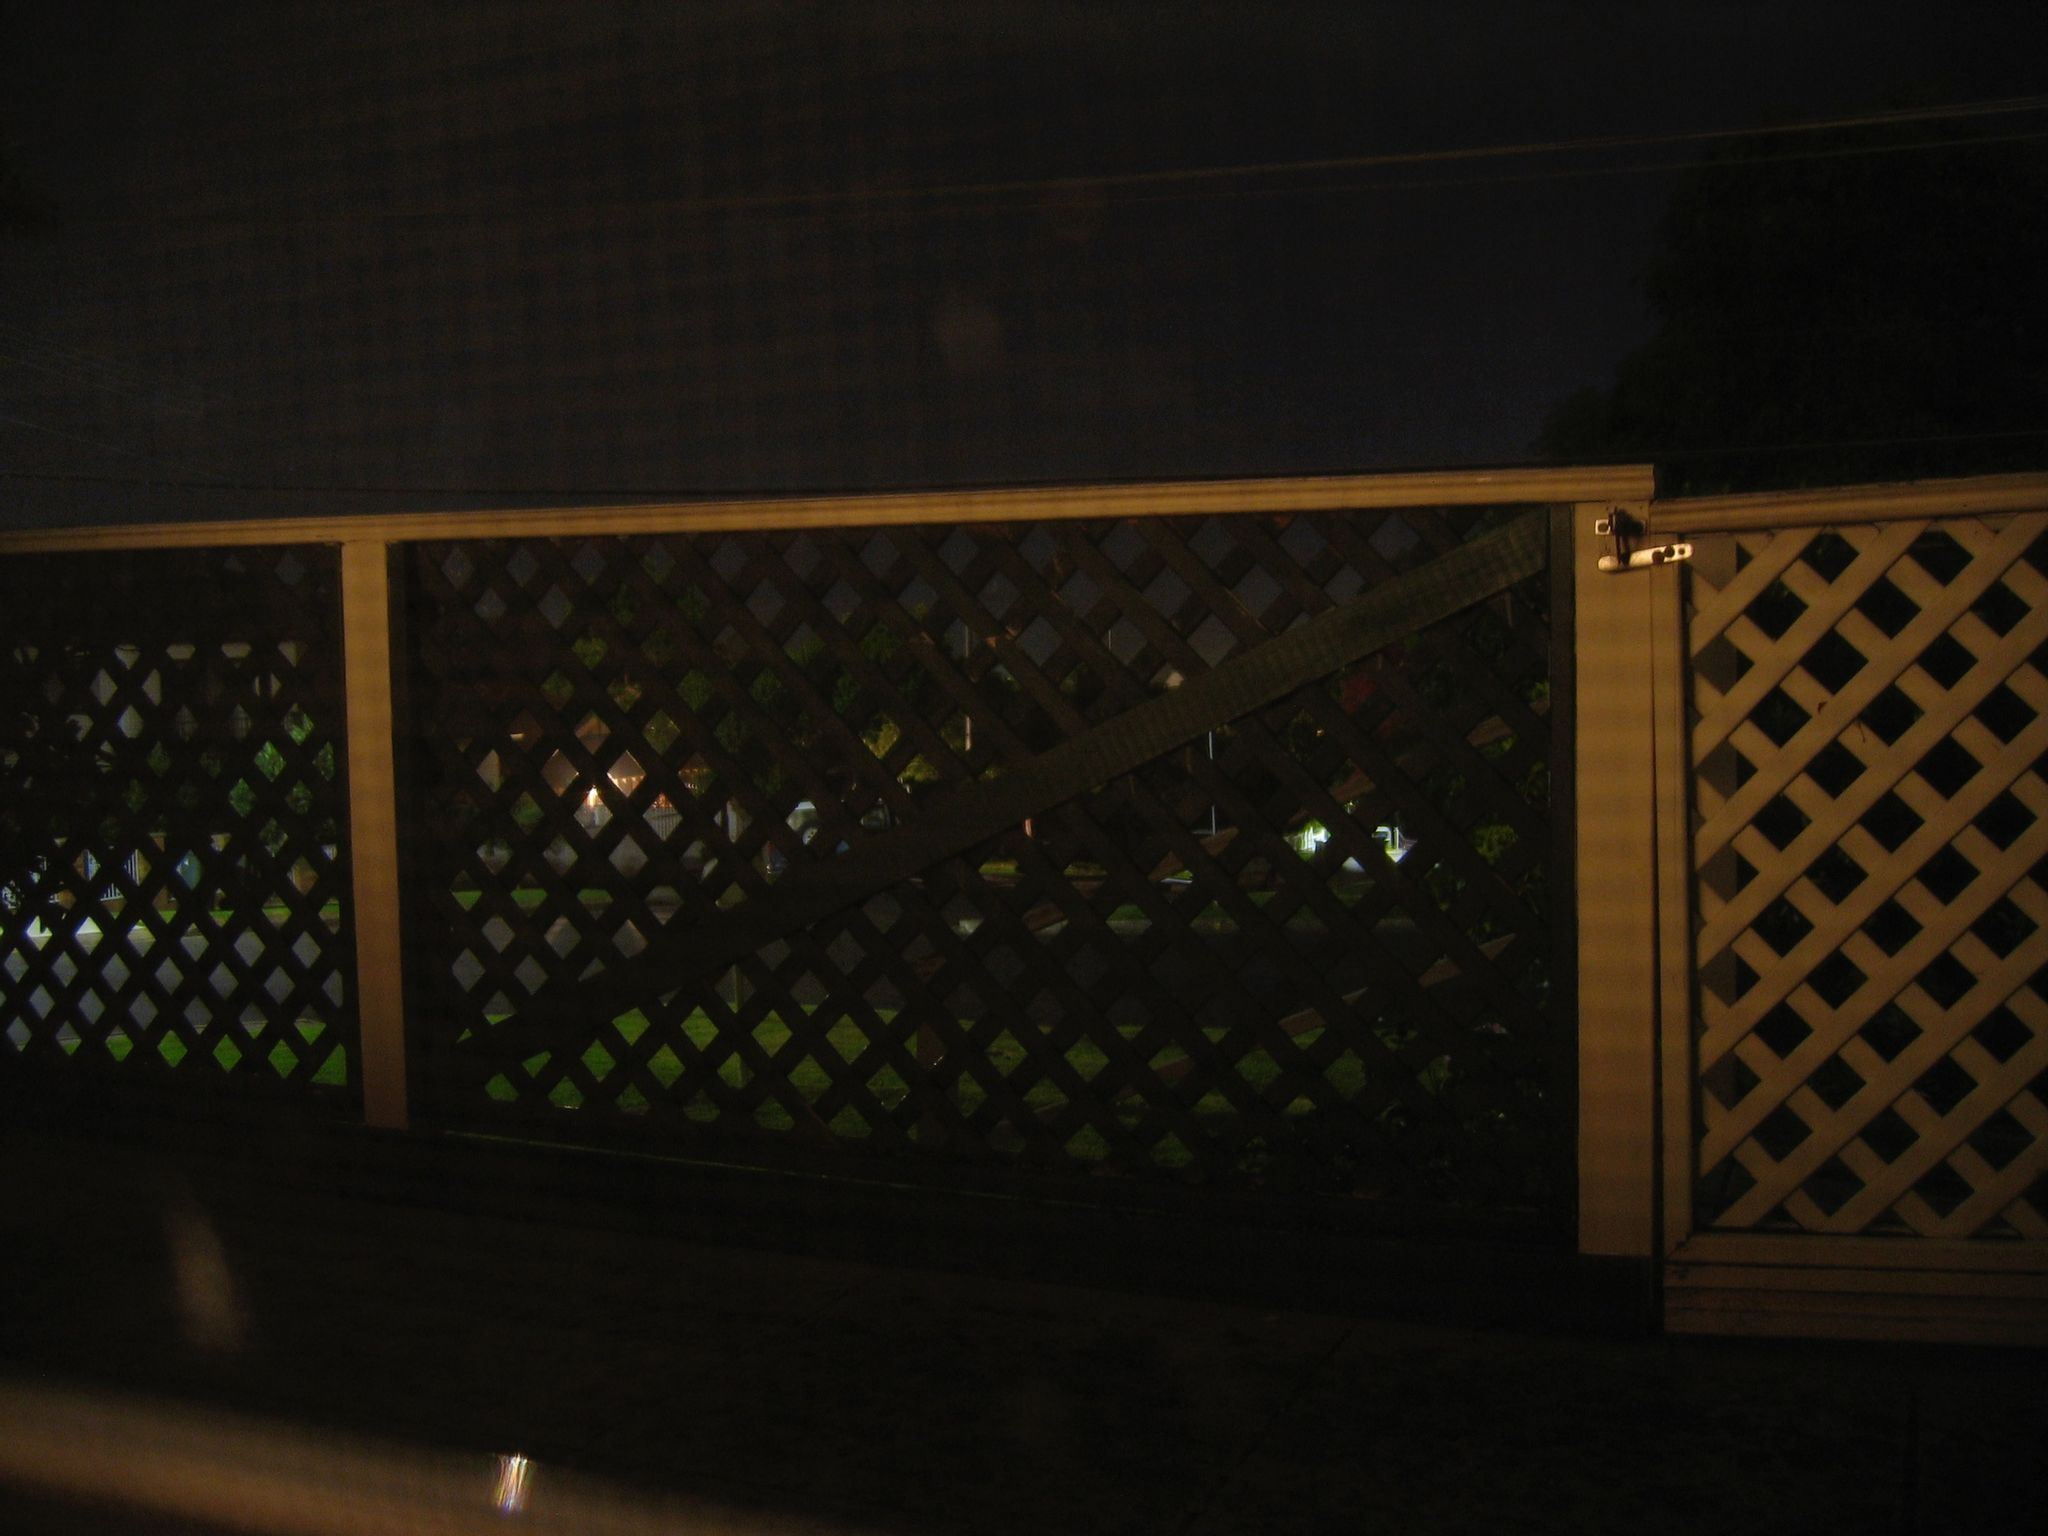 A very under-exposed nighttime photo of the lattice on the front of a balcony, looking out at the night.